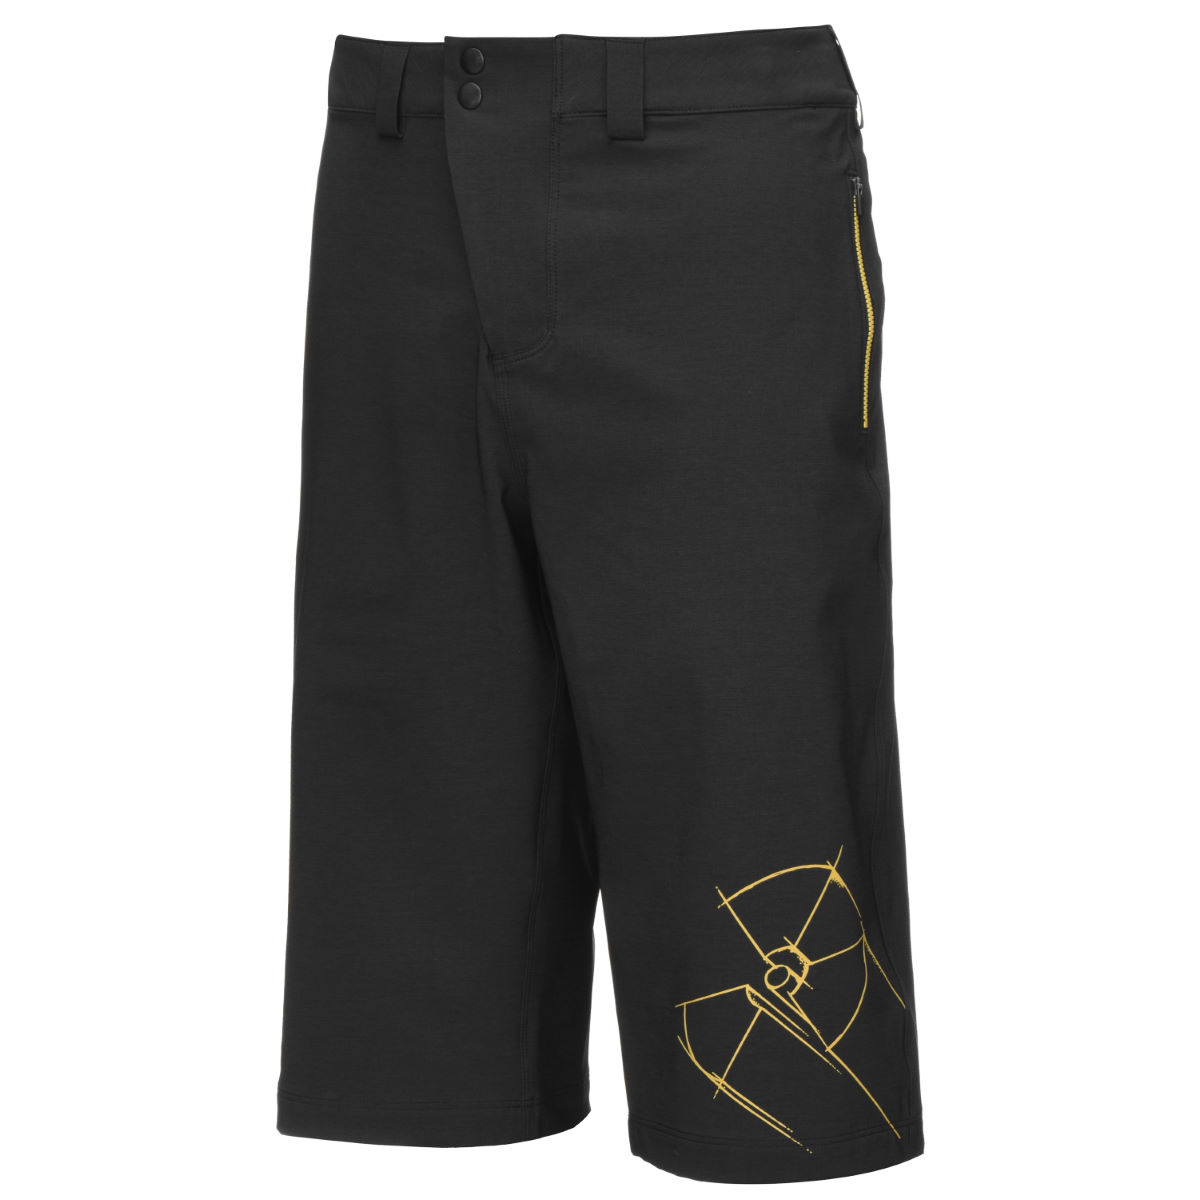 Short Nukeproof Blackline Rad - Large Noir Shorts amples